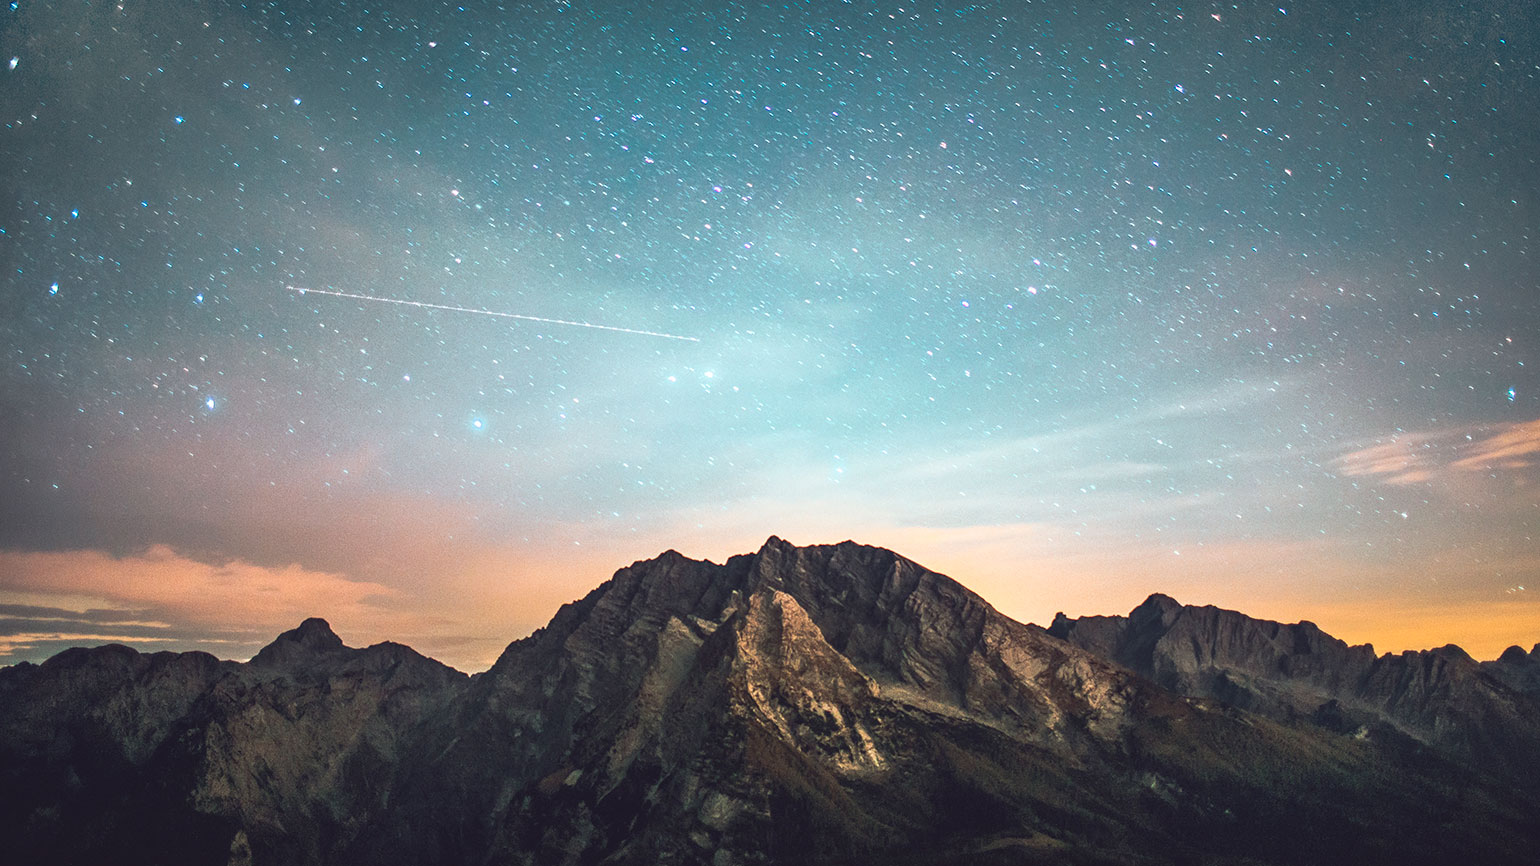 Starlit sky above a mountain